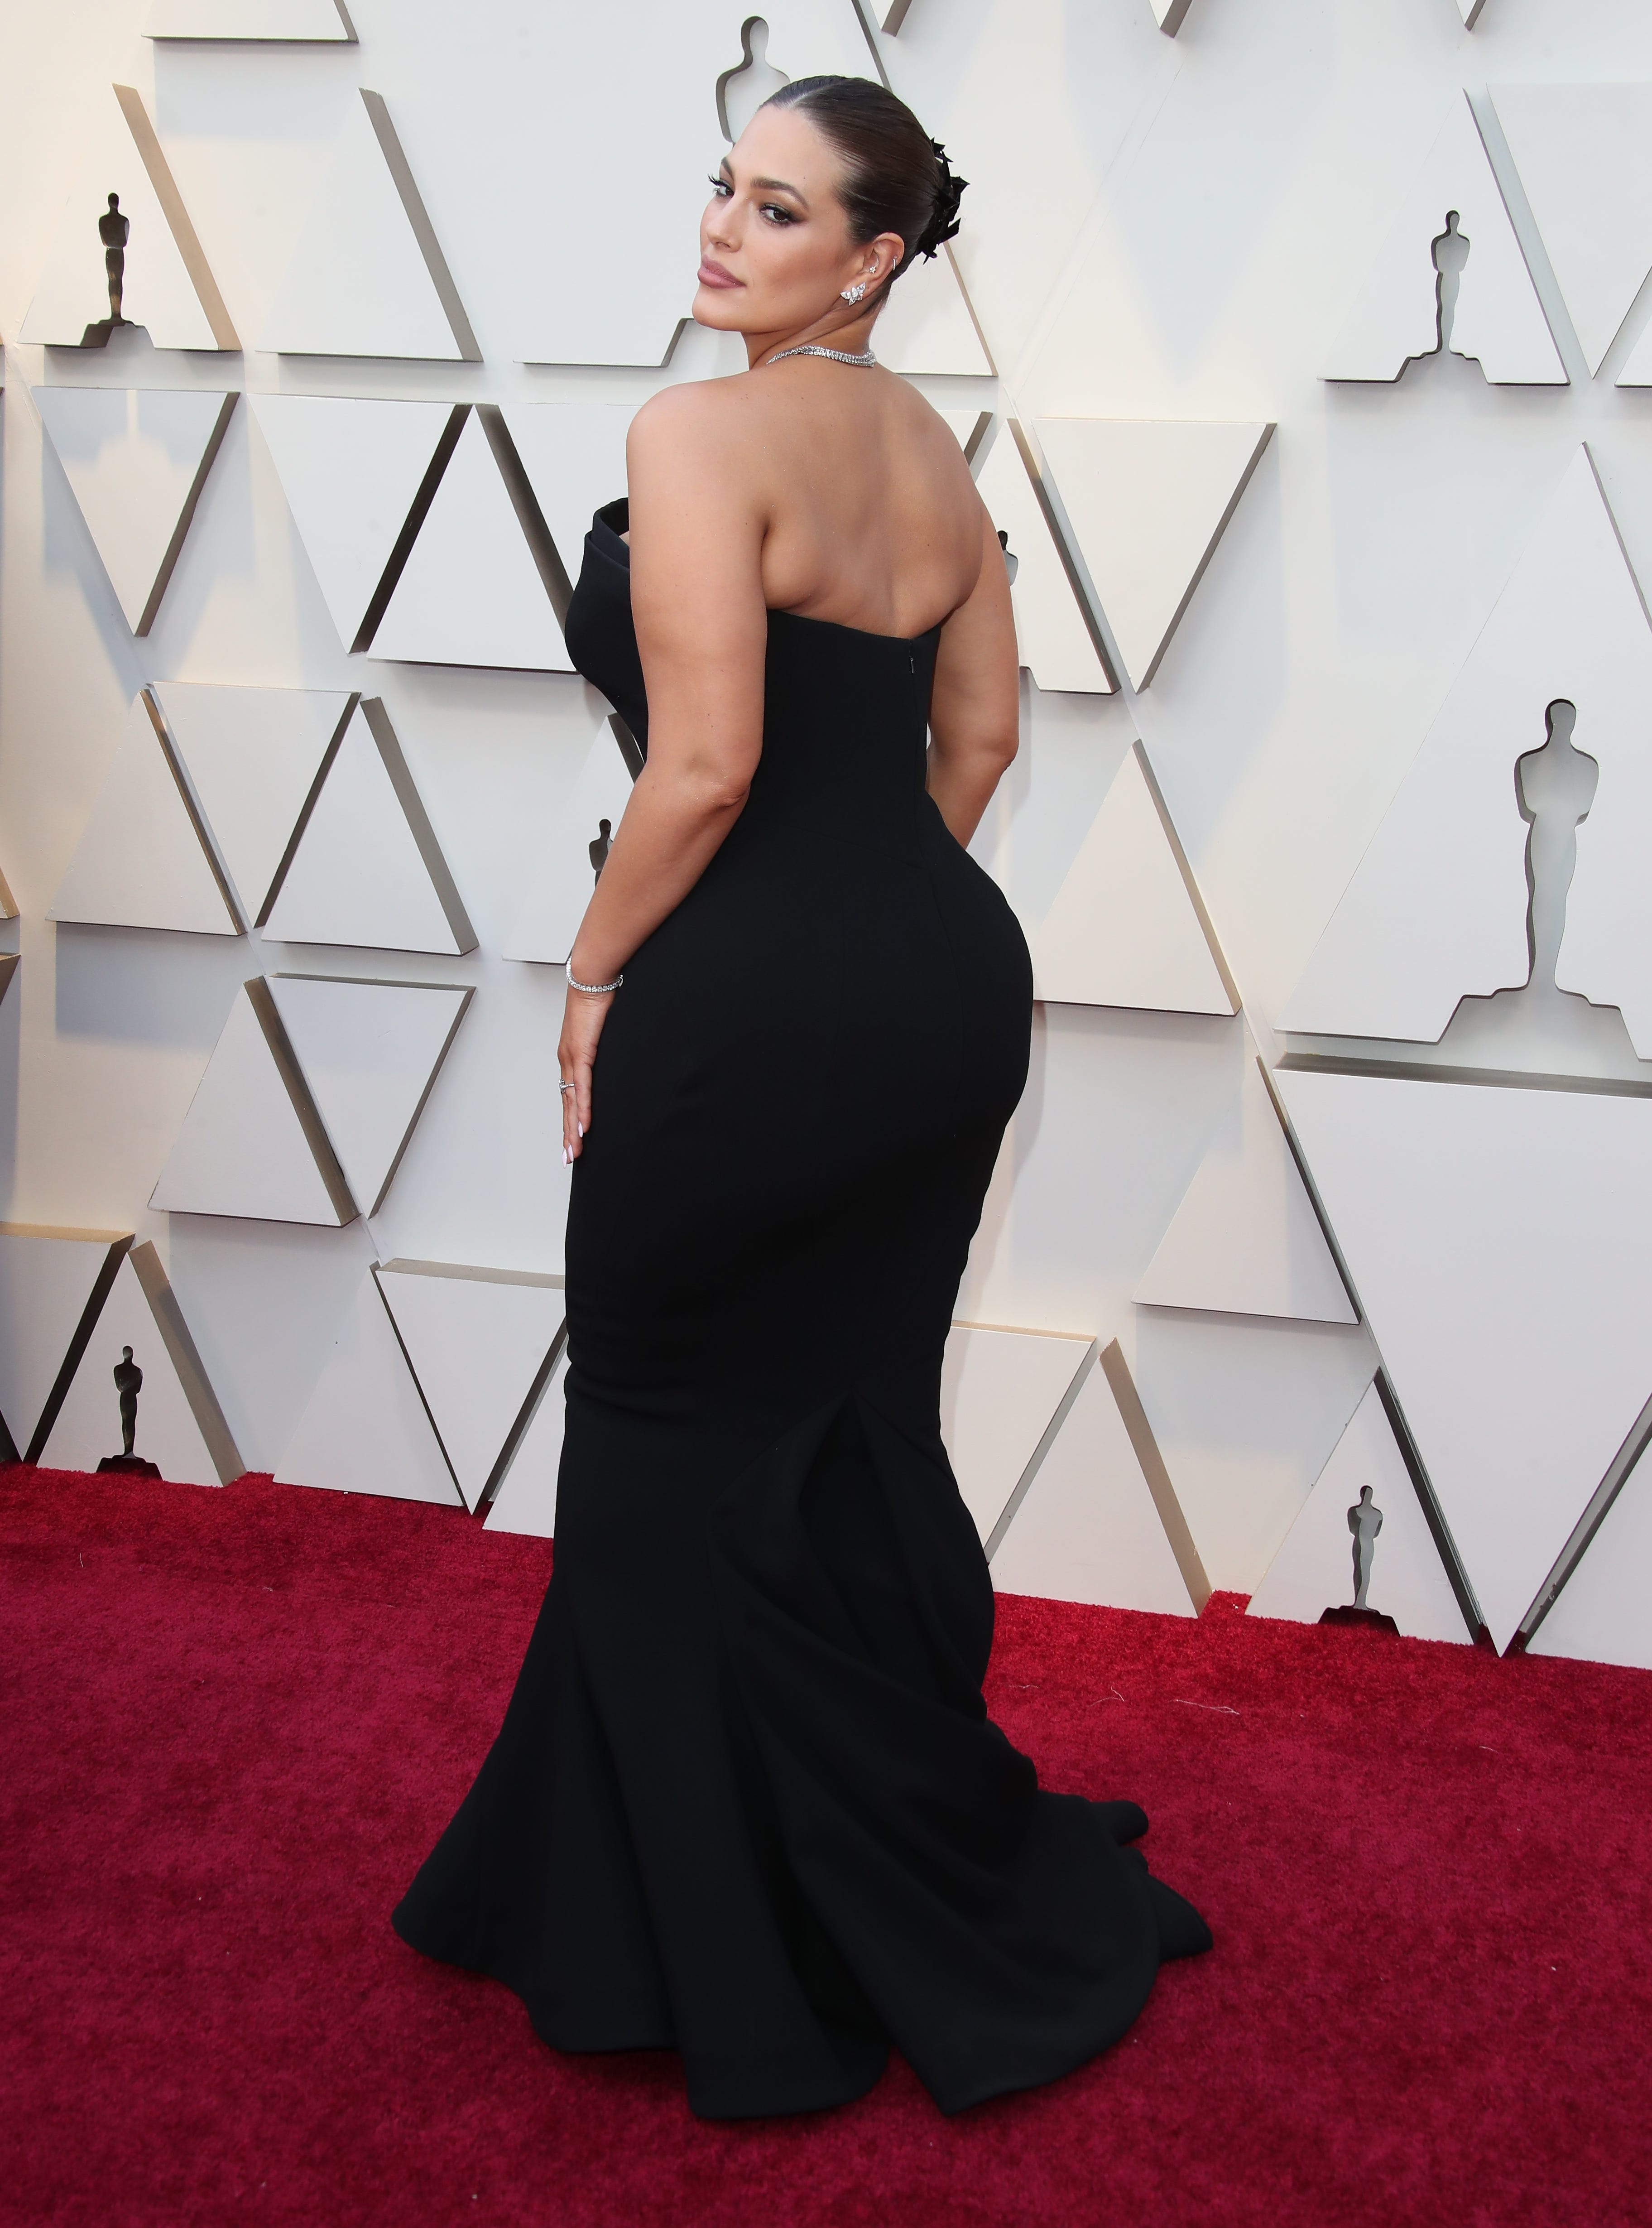 February 24, 2019; Los Angeles, CA, USA; Ashley Graham arrives at the 91st Academy Awards at the Dolby Theatre. Mandatory Credit: Dan MacMedan-USA TODAY NETWORK (Via OlyDrop)